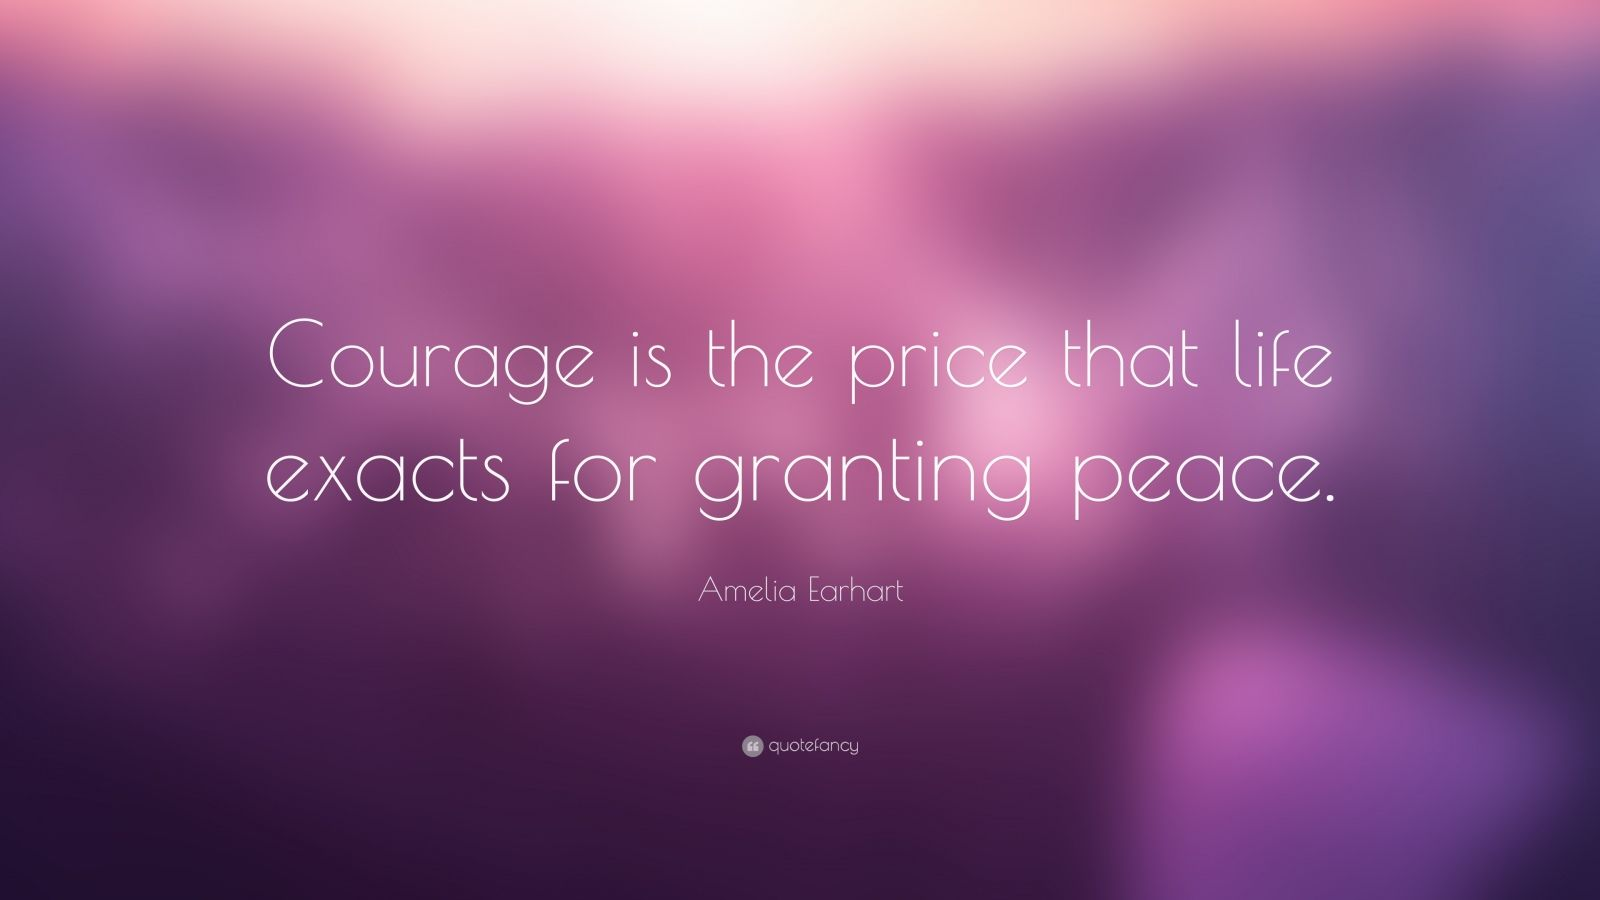 a description of courage as the price that life exacts for granting peace Courage is the price that life exacts for granting peace, the soul that knows it not, knows no release from little things-amelia earhart  whatever its source, weakens, takes away courage, and shortens life - john lancaster spalding courage is the first of human qualities because it is the quality which guarantees all the others - winston.